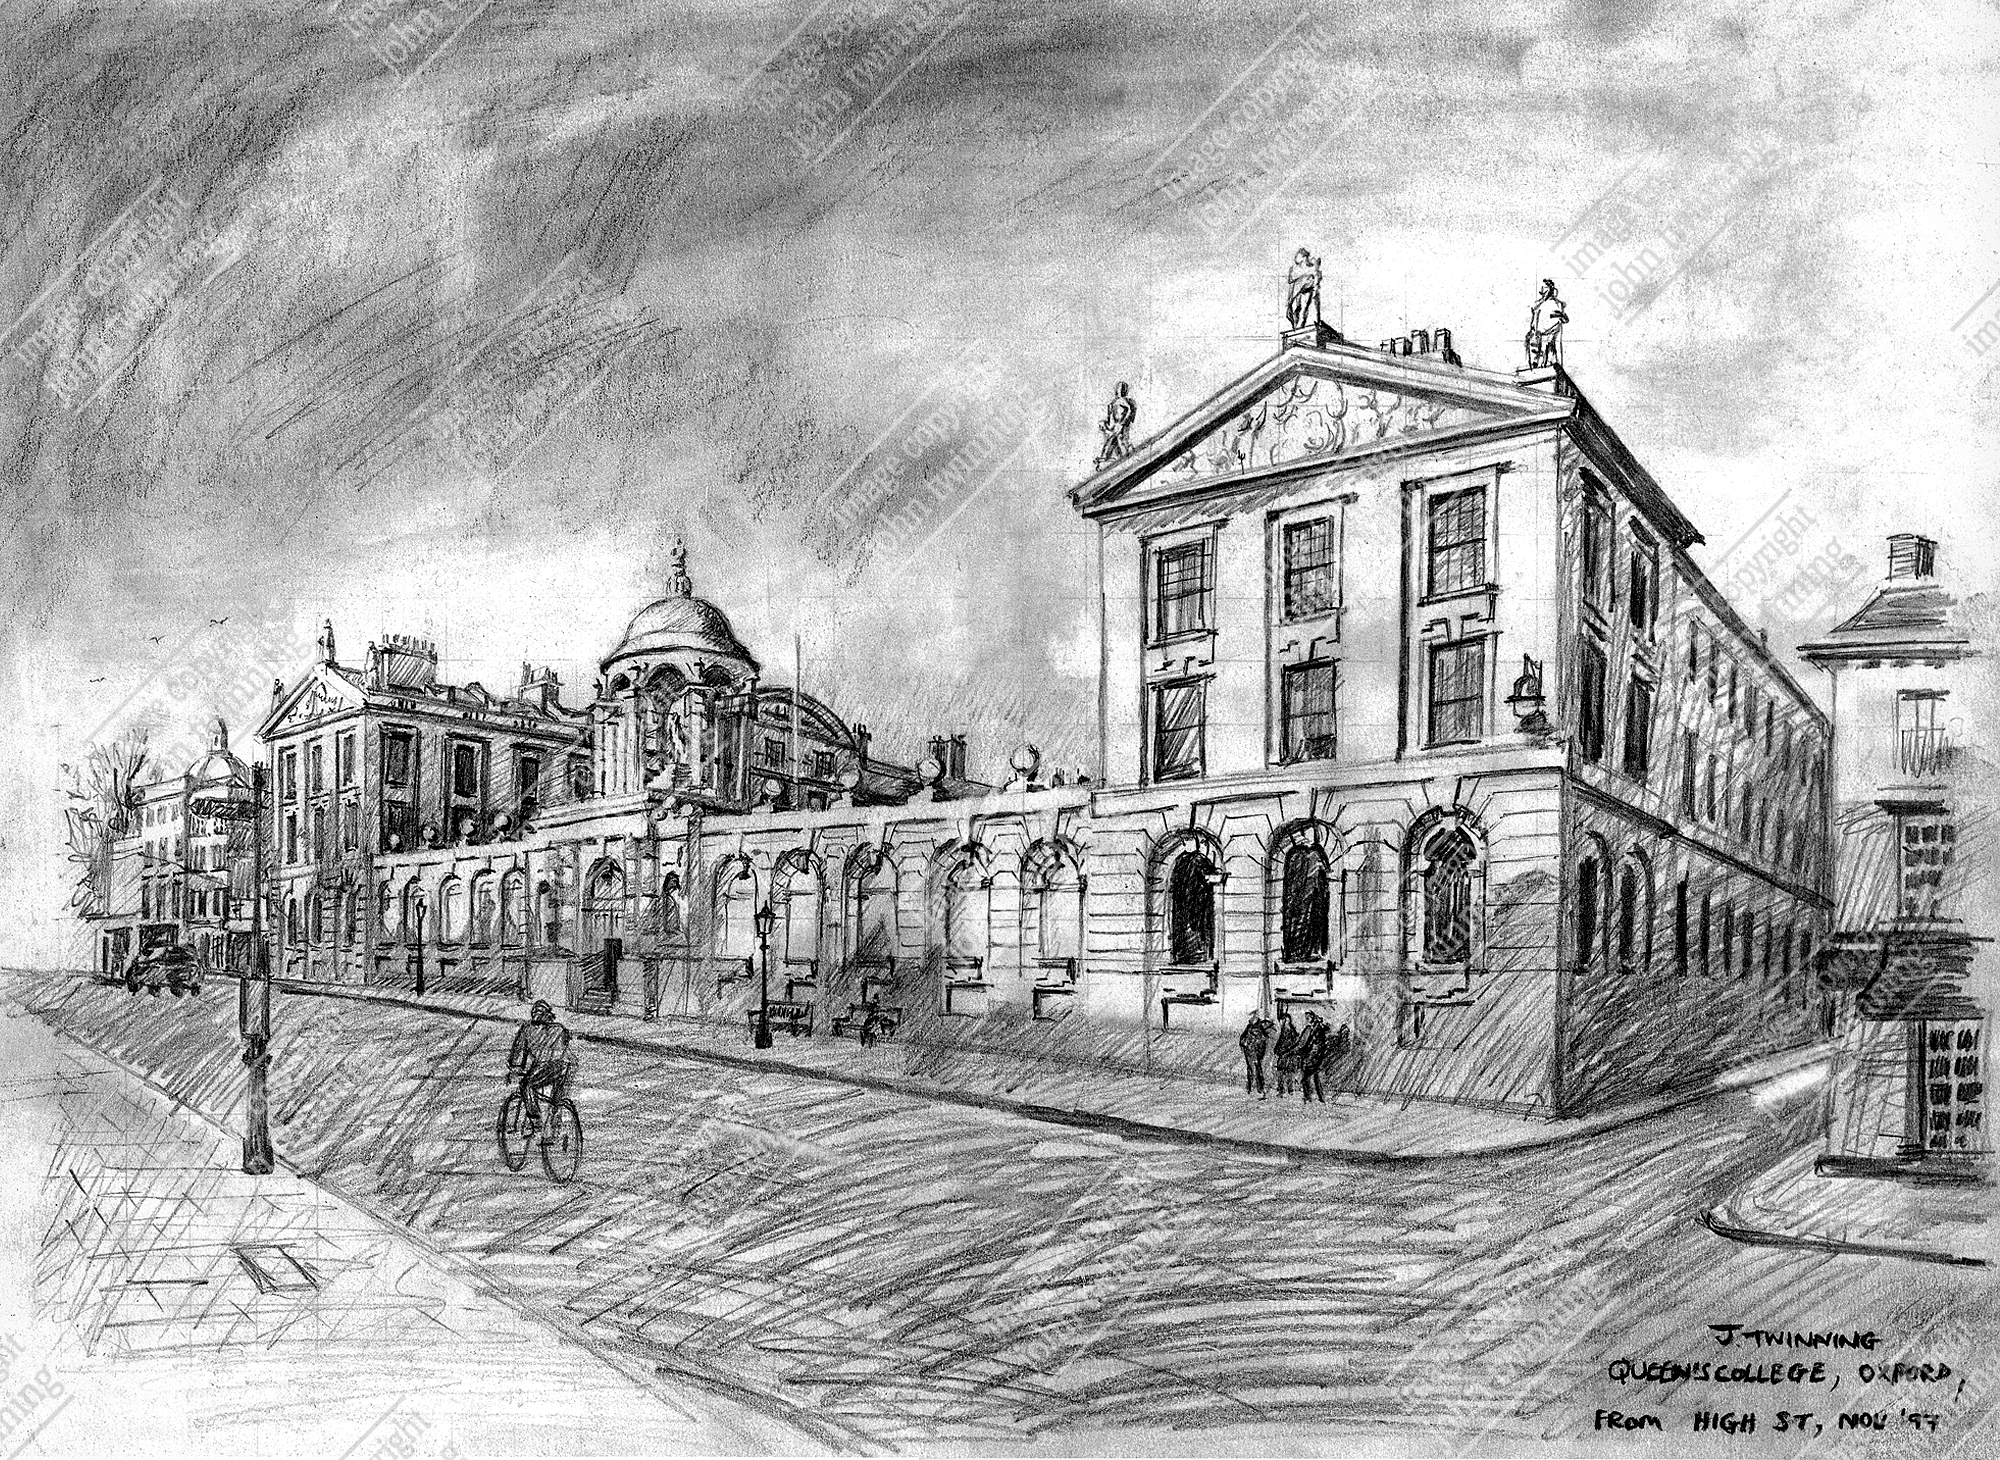 15% off! Queen's College: view from the High Street